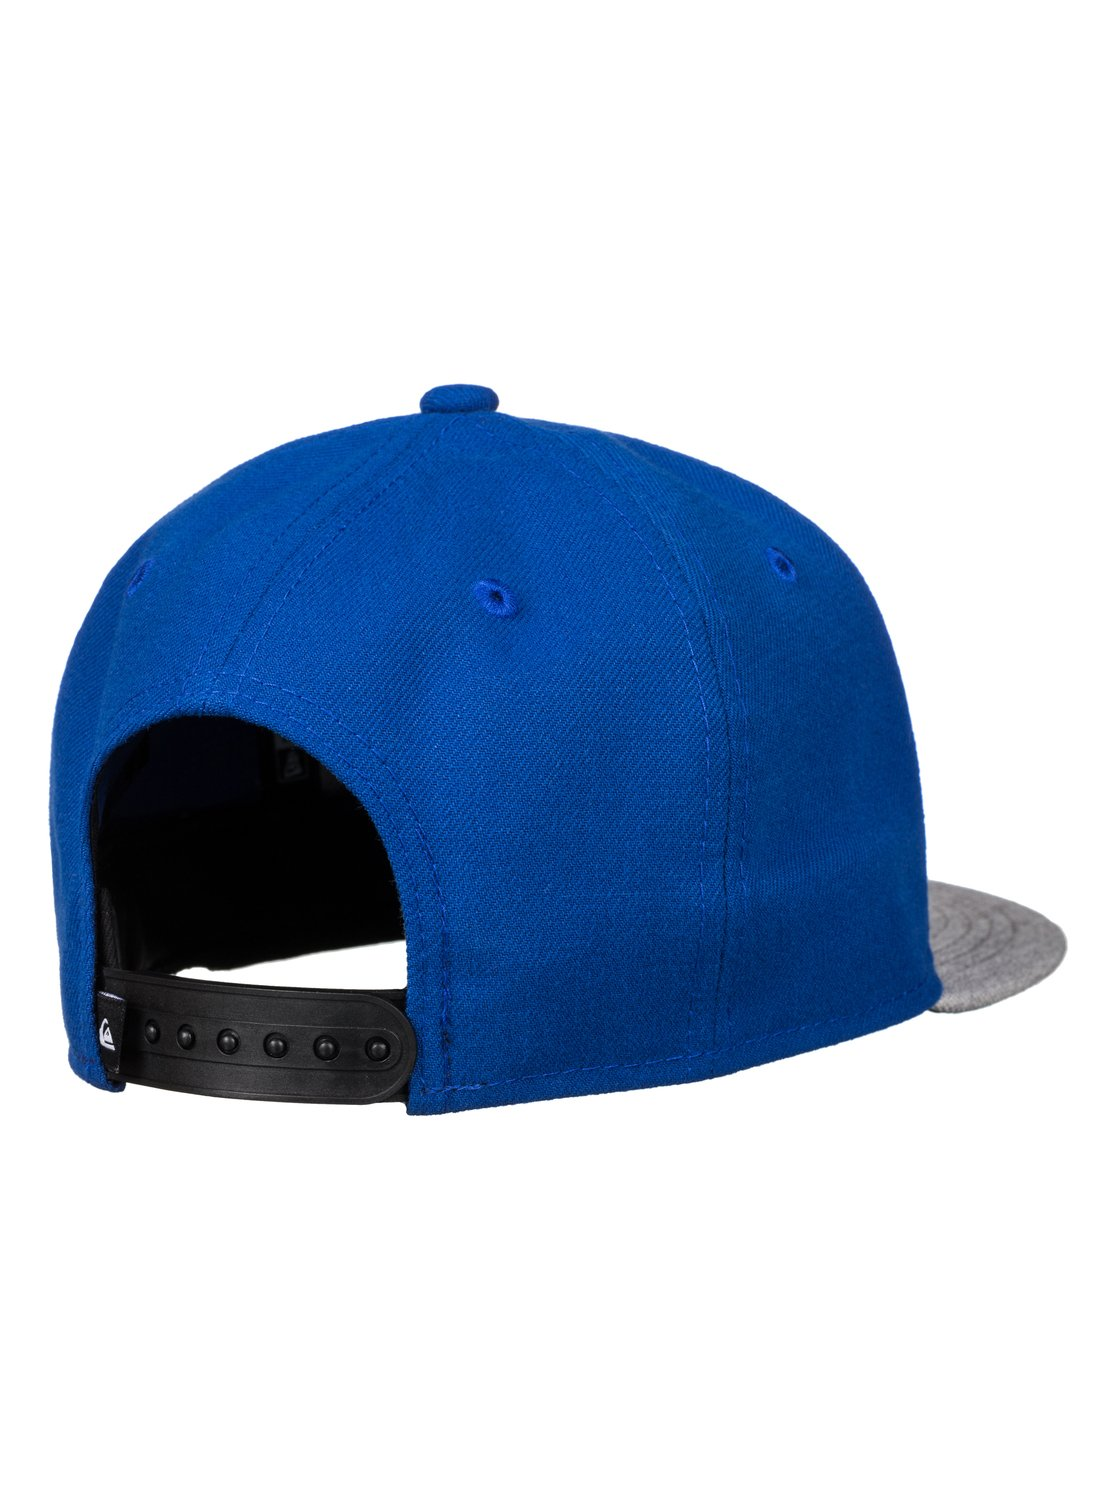 51bb10db 3 of 5 Quiksilver™ Stuckles Snap - Snapback Hat - Boys 8-16 - ONE SIZE -